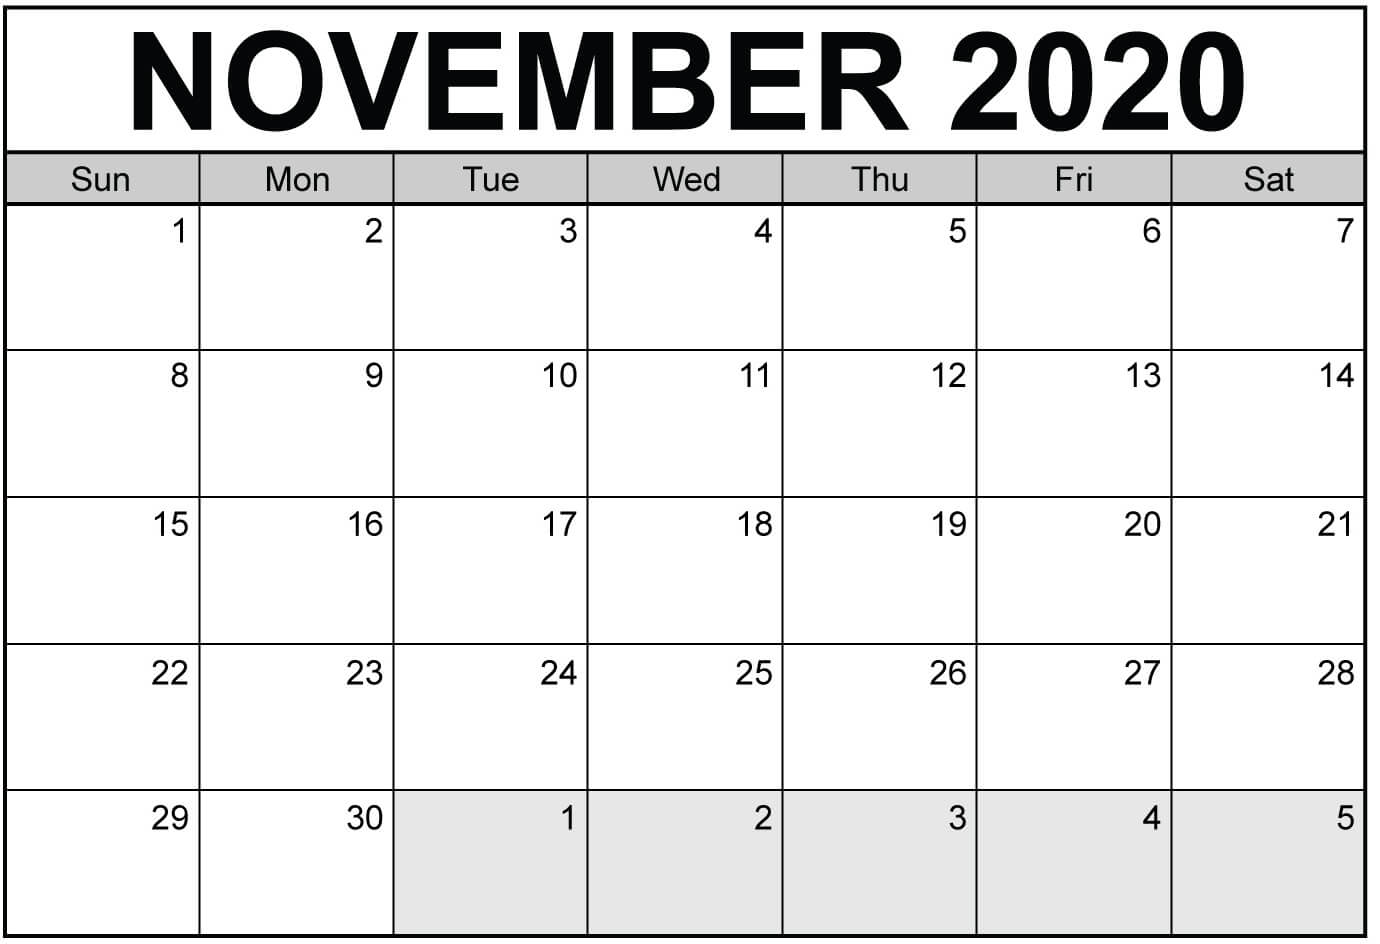 Fillable November 2020 Calendar Template